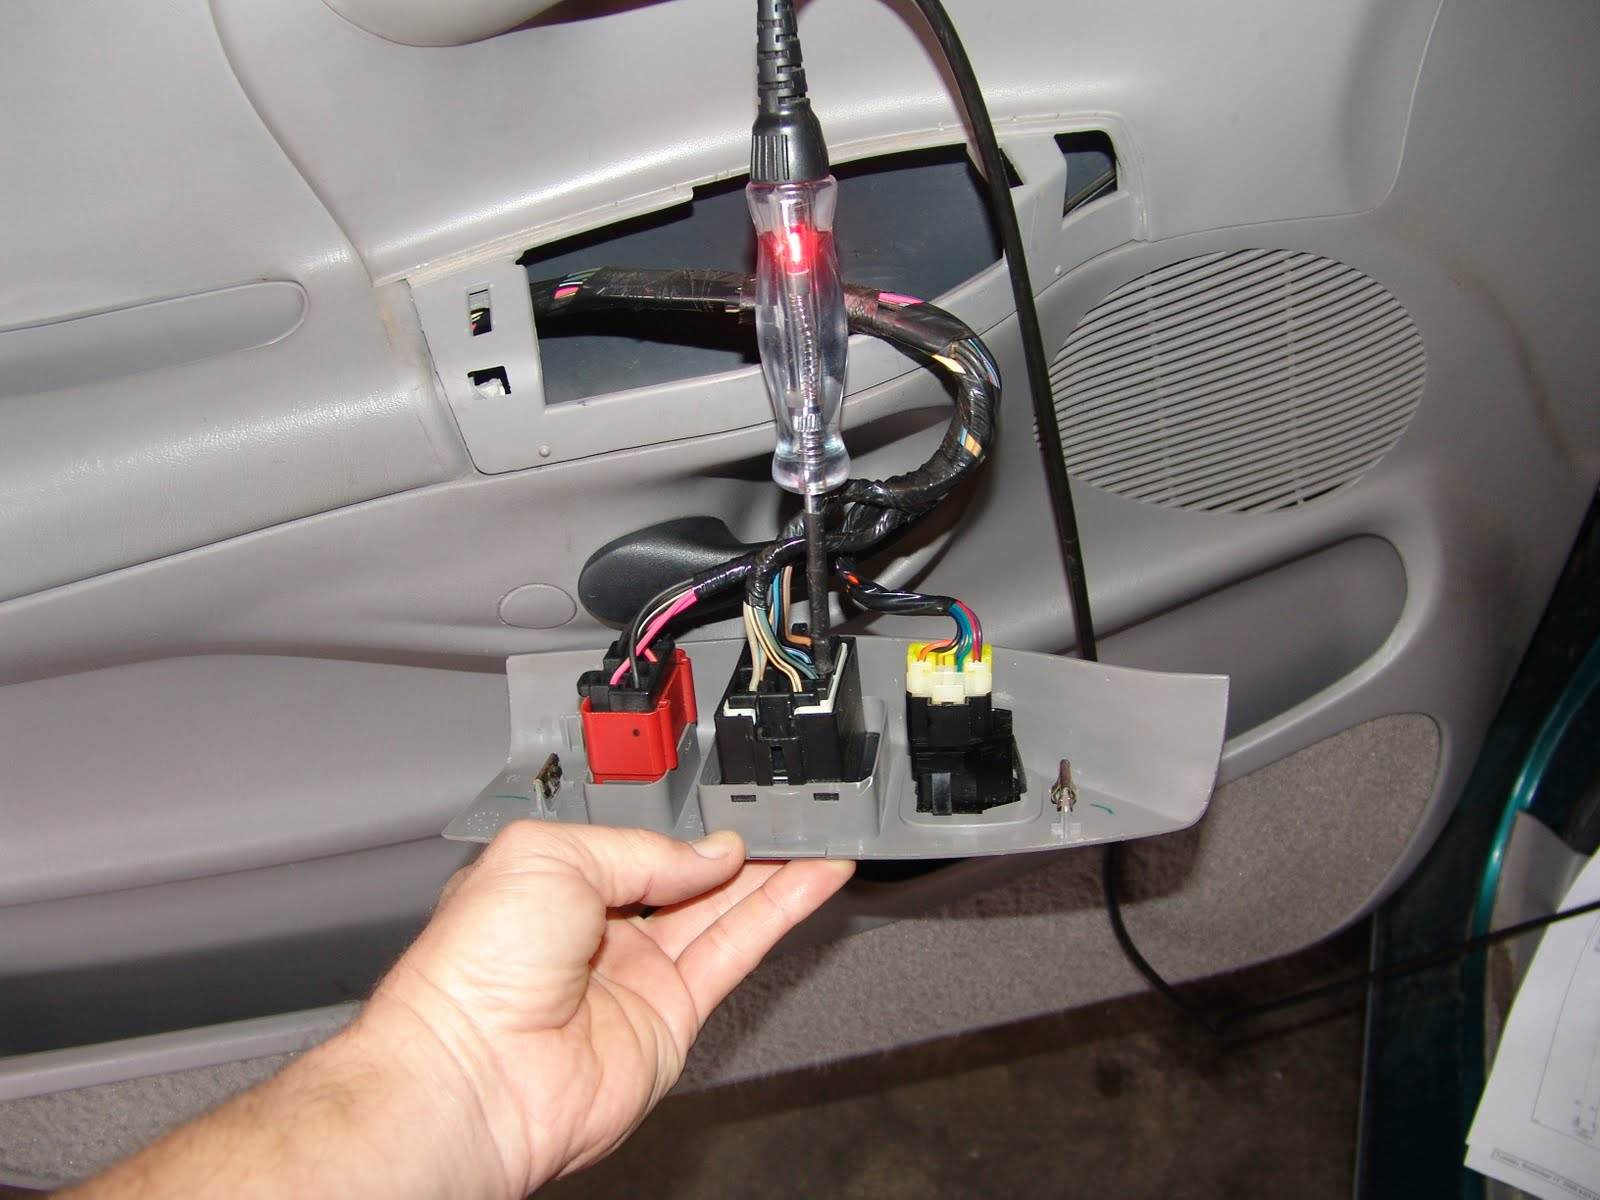 hight resolution of 1998 ford f 150 power window switch wiring wiring library 1998 ford f 150 power window switch wiring